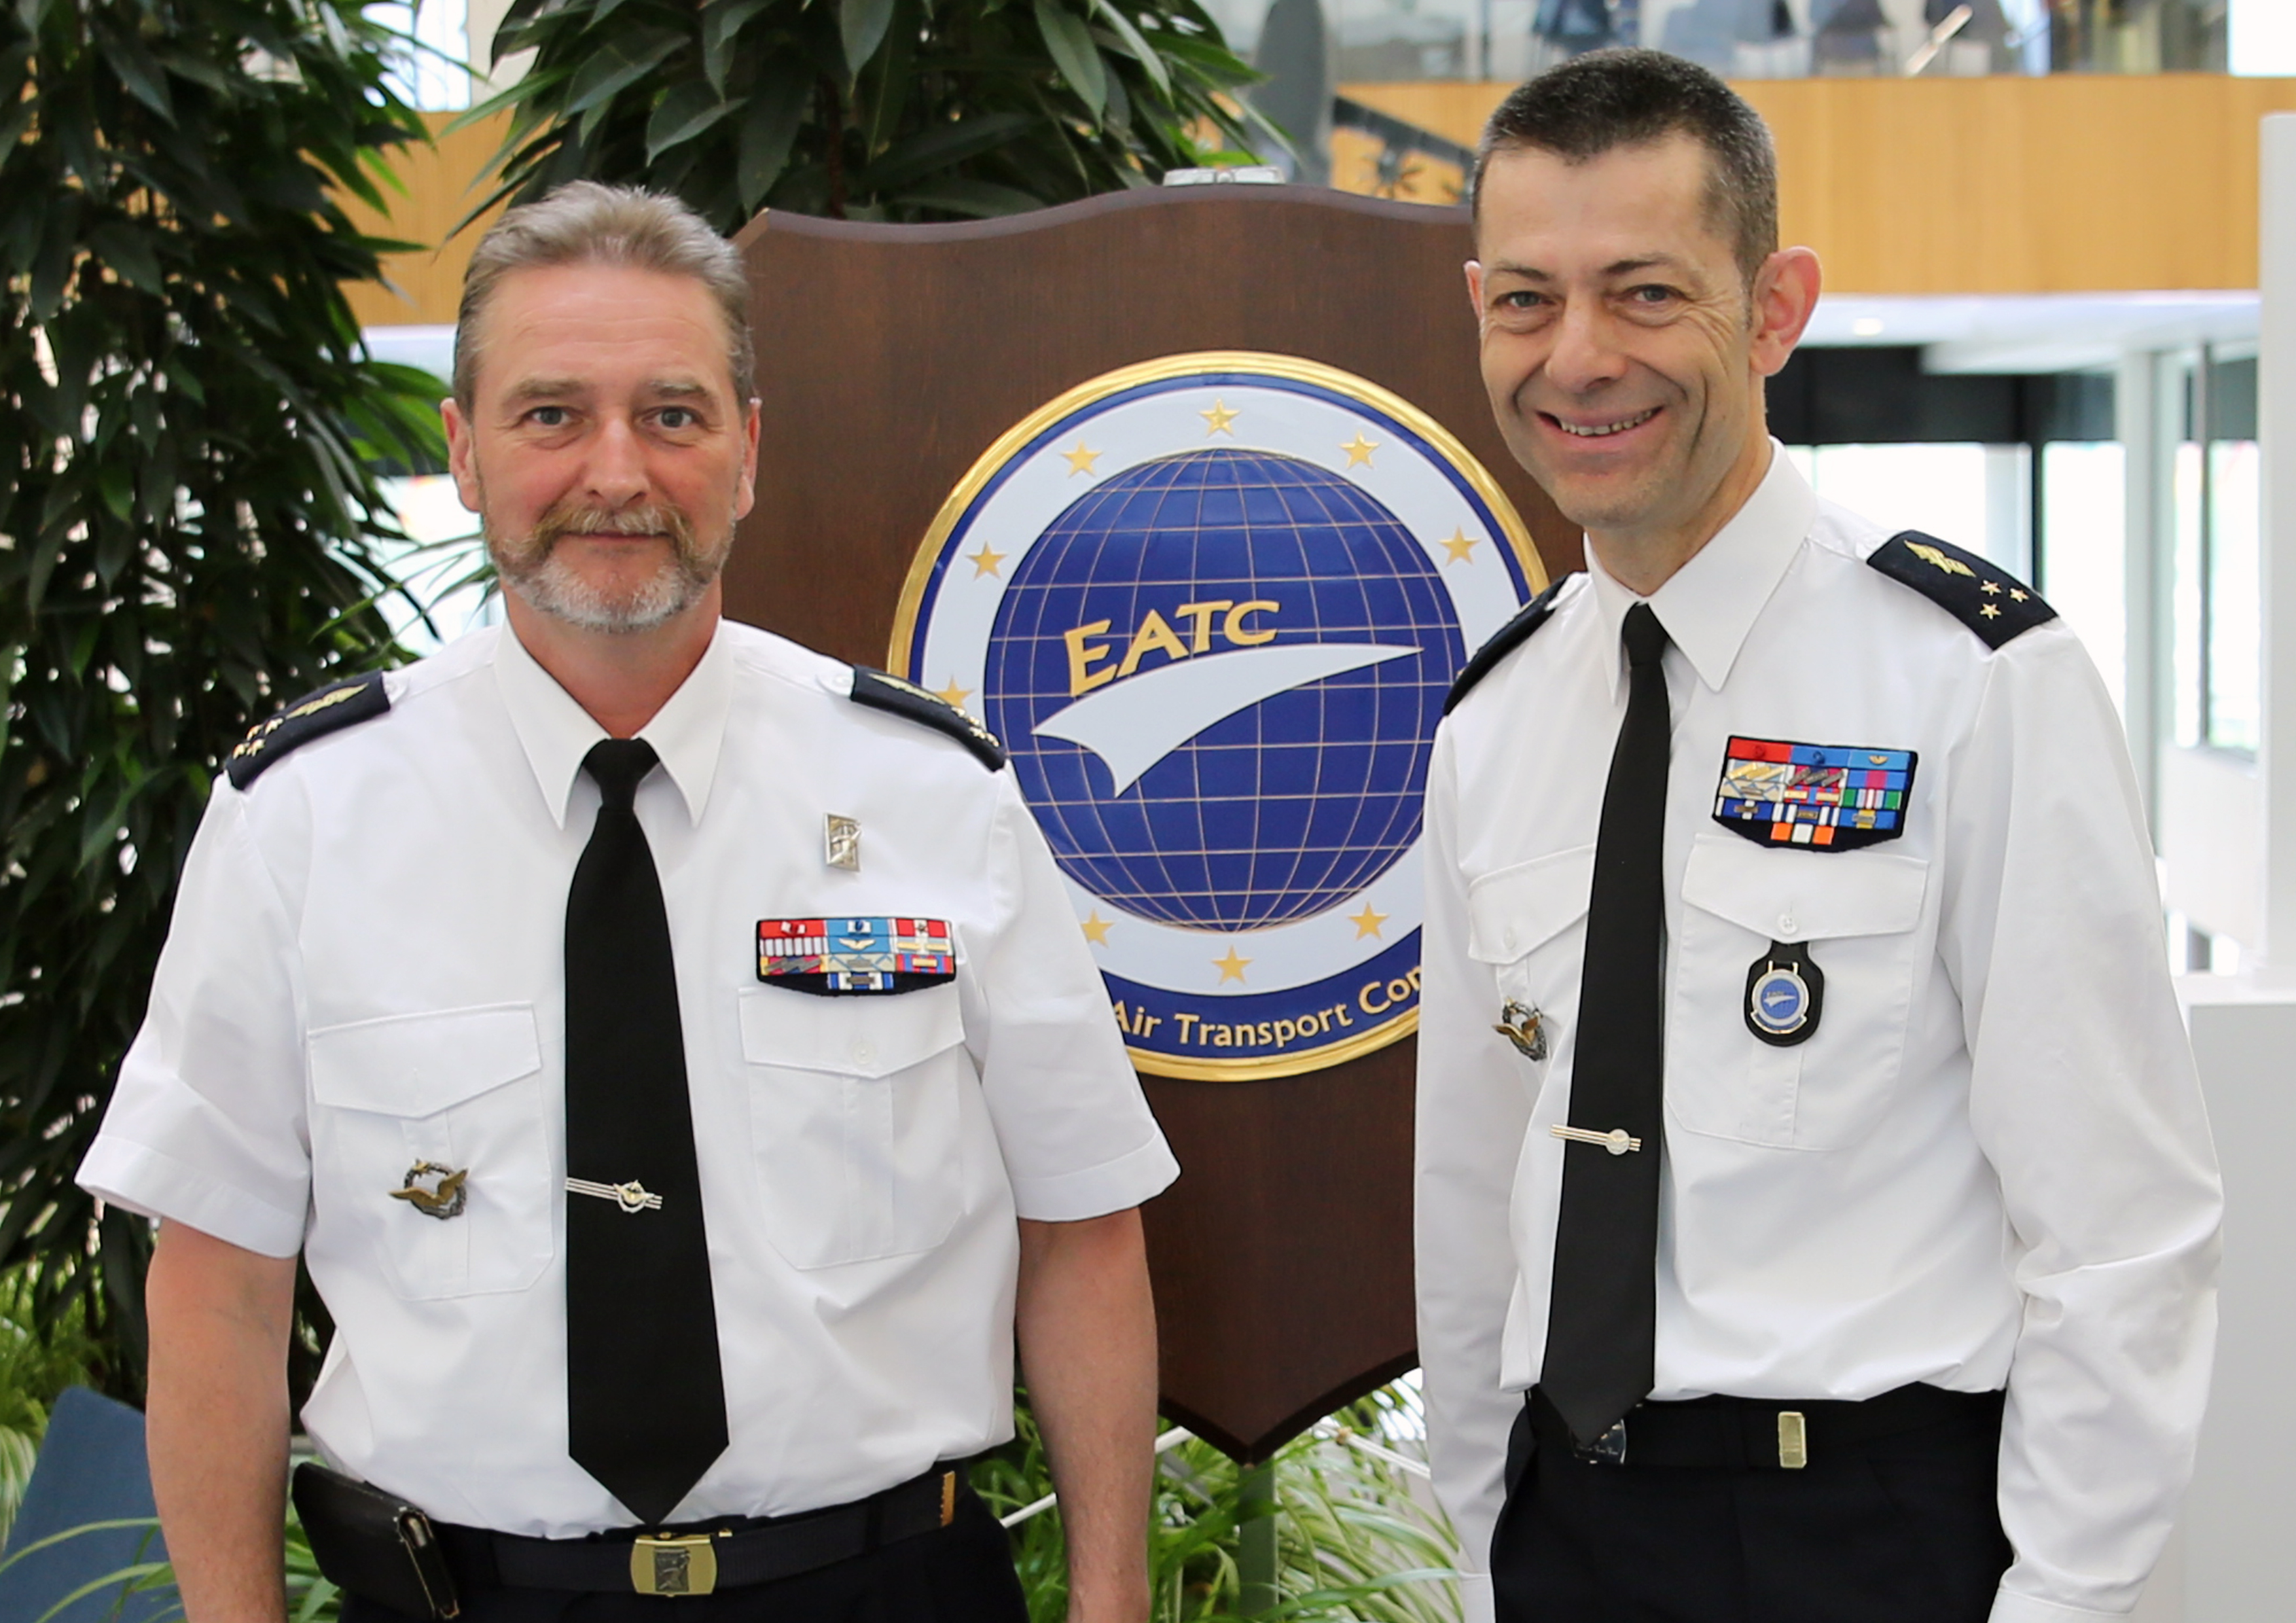 The French Air Defence and Air Operation Commander visits EATC